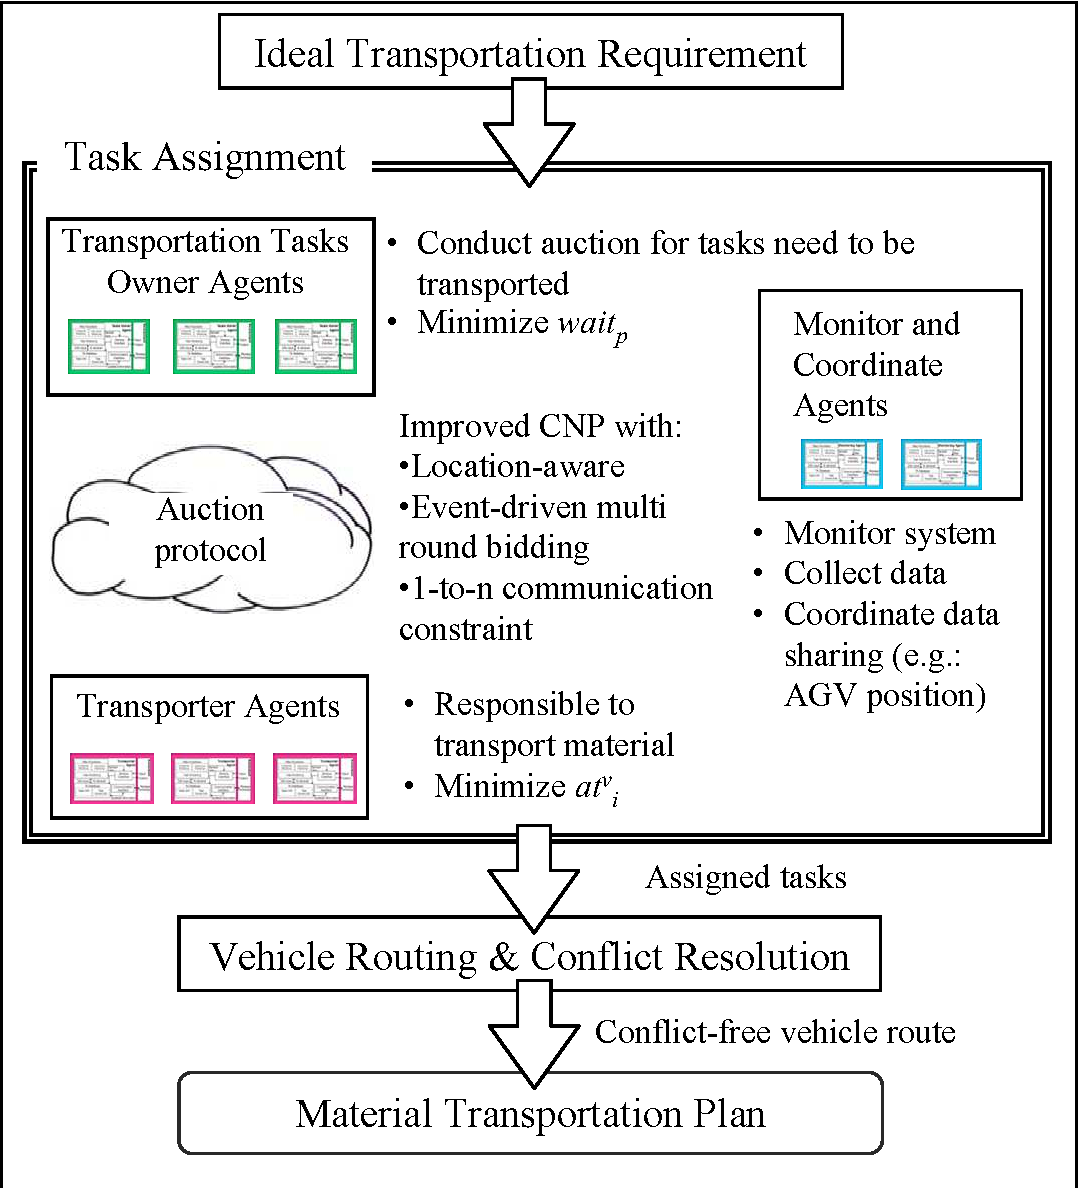 Fig. 3.1. Proposed Task Assignment Method within Material Transportation Planning